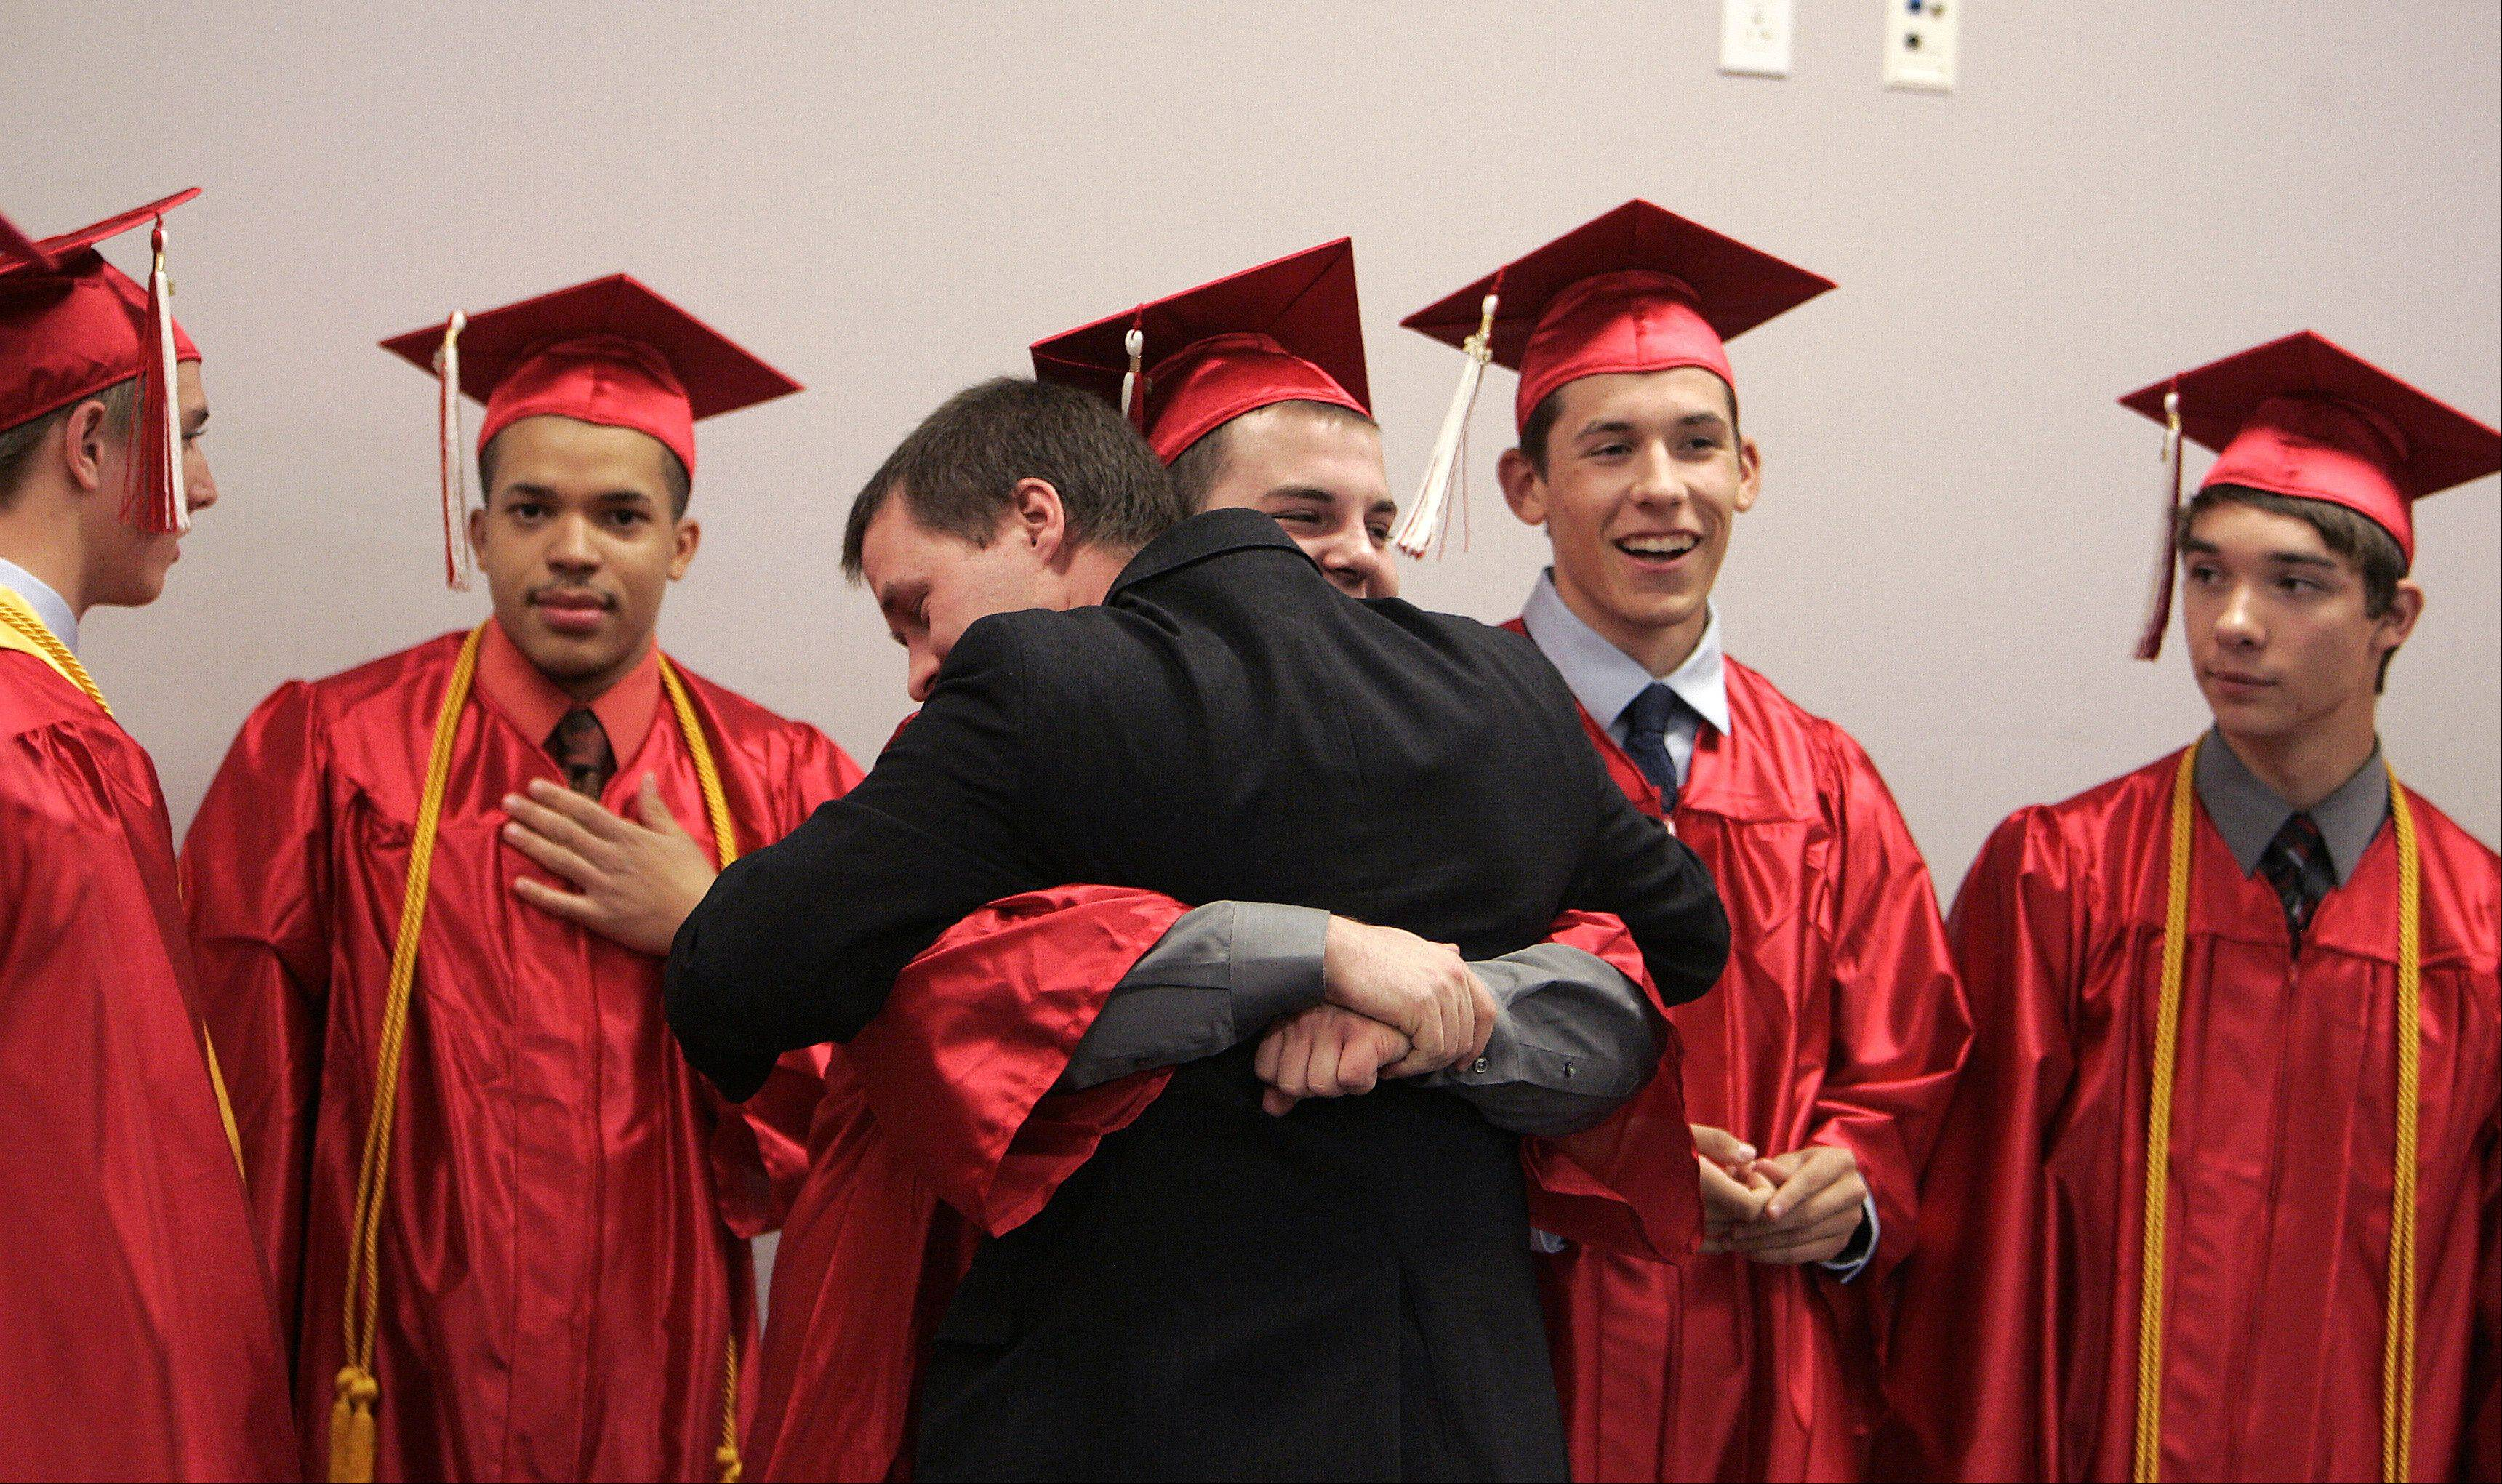 Aurora Christian Math teacher Bob Gorbold gets a giant bear hug from graduate Nick Larson as the students lined up for Aurora Christian�s commencement ceremony Sunday, May 26, 2013 in Aurora.